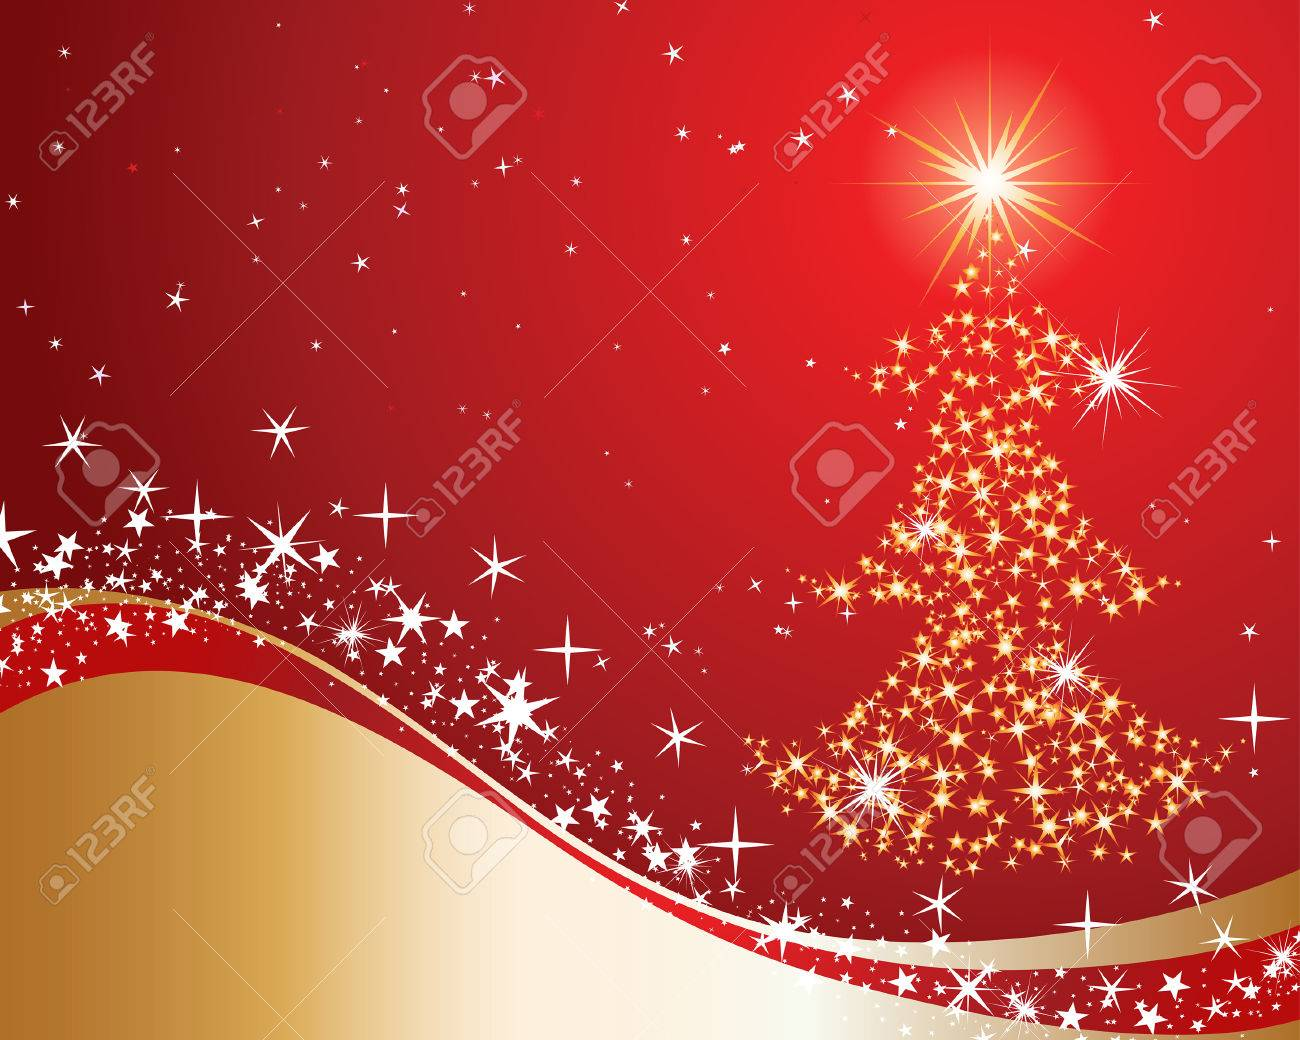 Beautiful vector Christmas (New Year) background for design use Stock Vector - 5735242